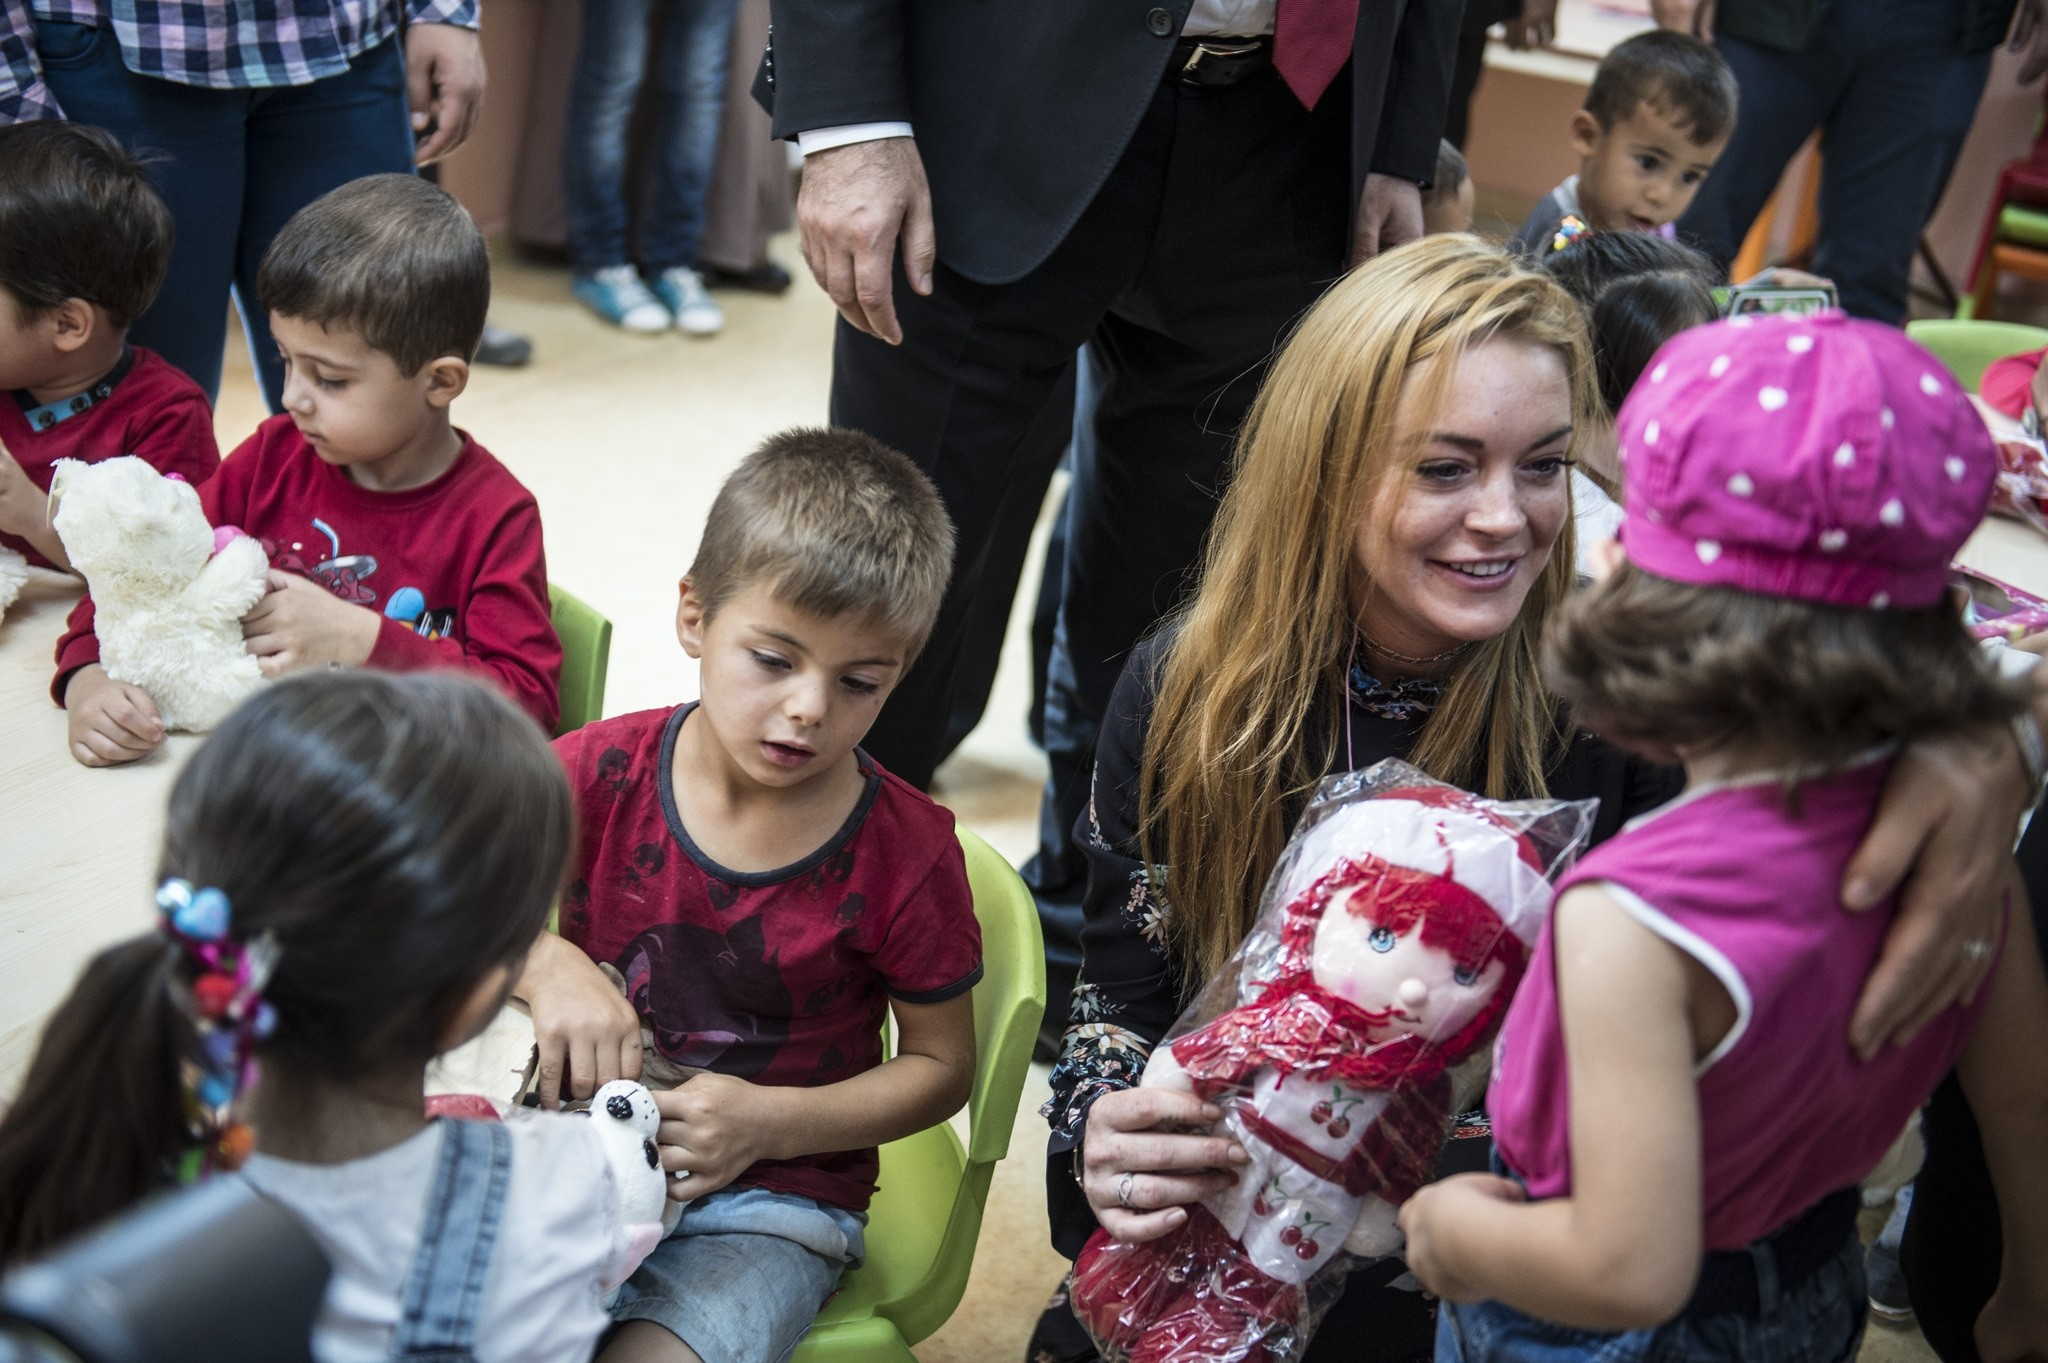 Actress Lindsay Lohan meets Syrian refugee chidren during her visit to a refugee camp in Turkey's southeastern province of Gaziantep's Nizip district. (AA Photo)